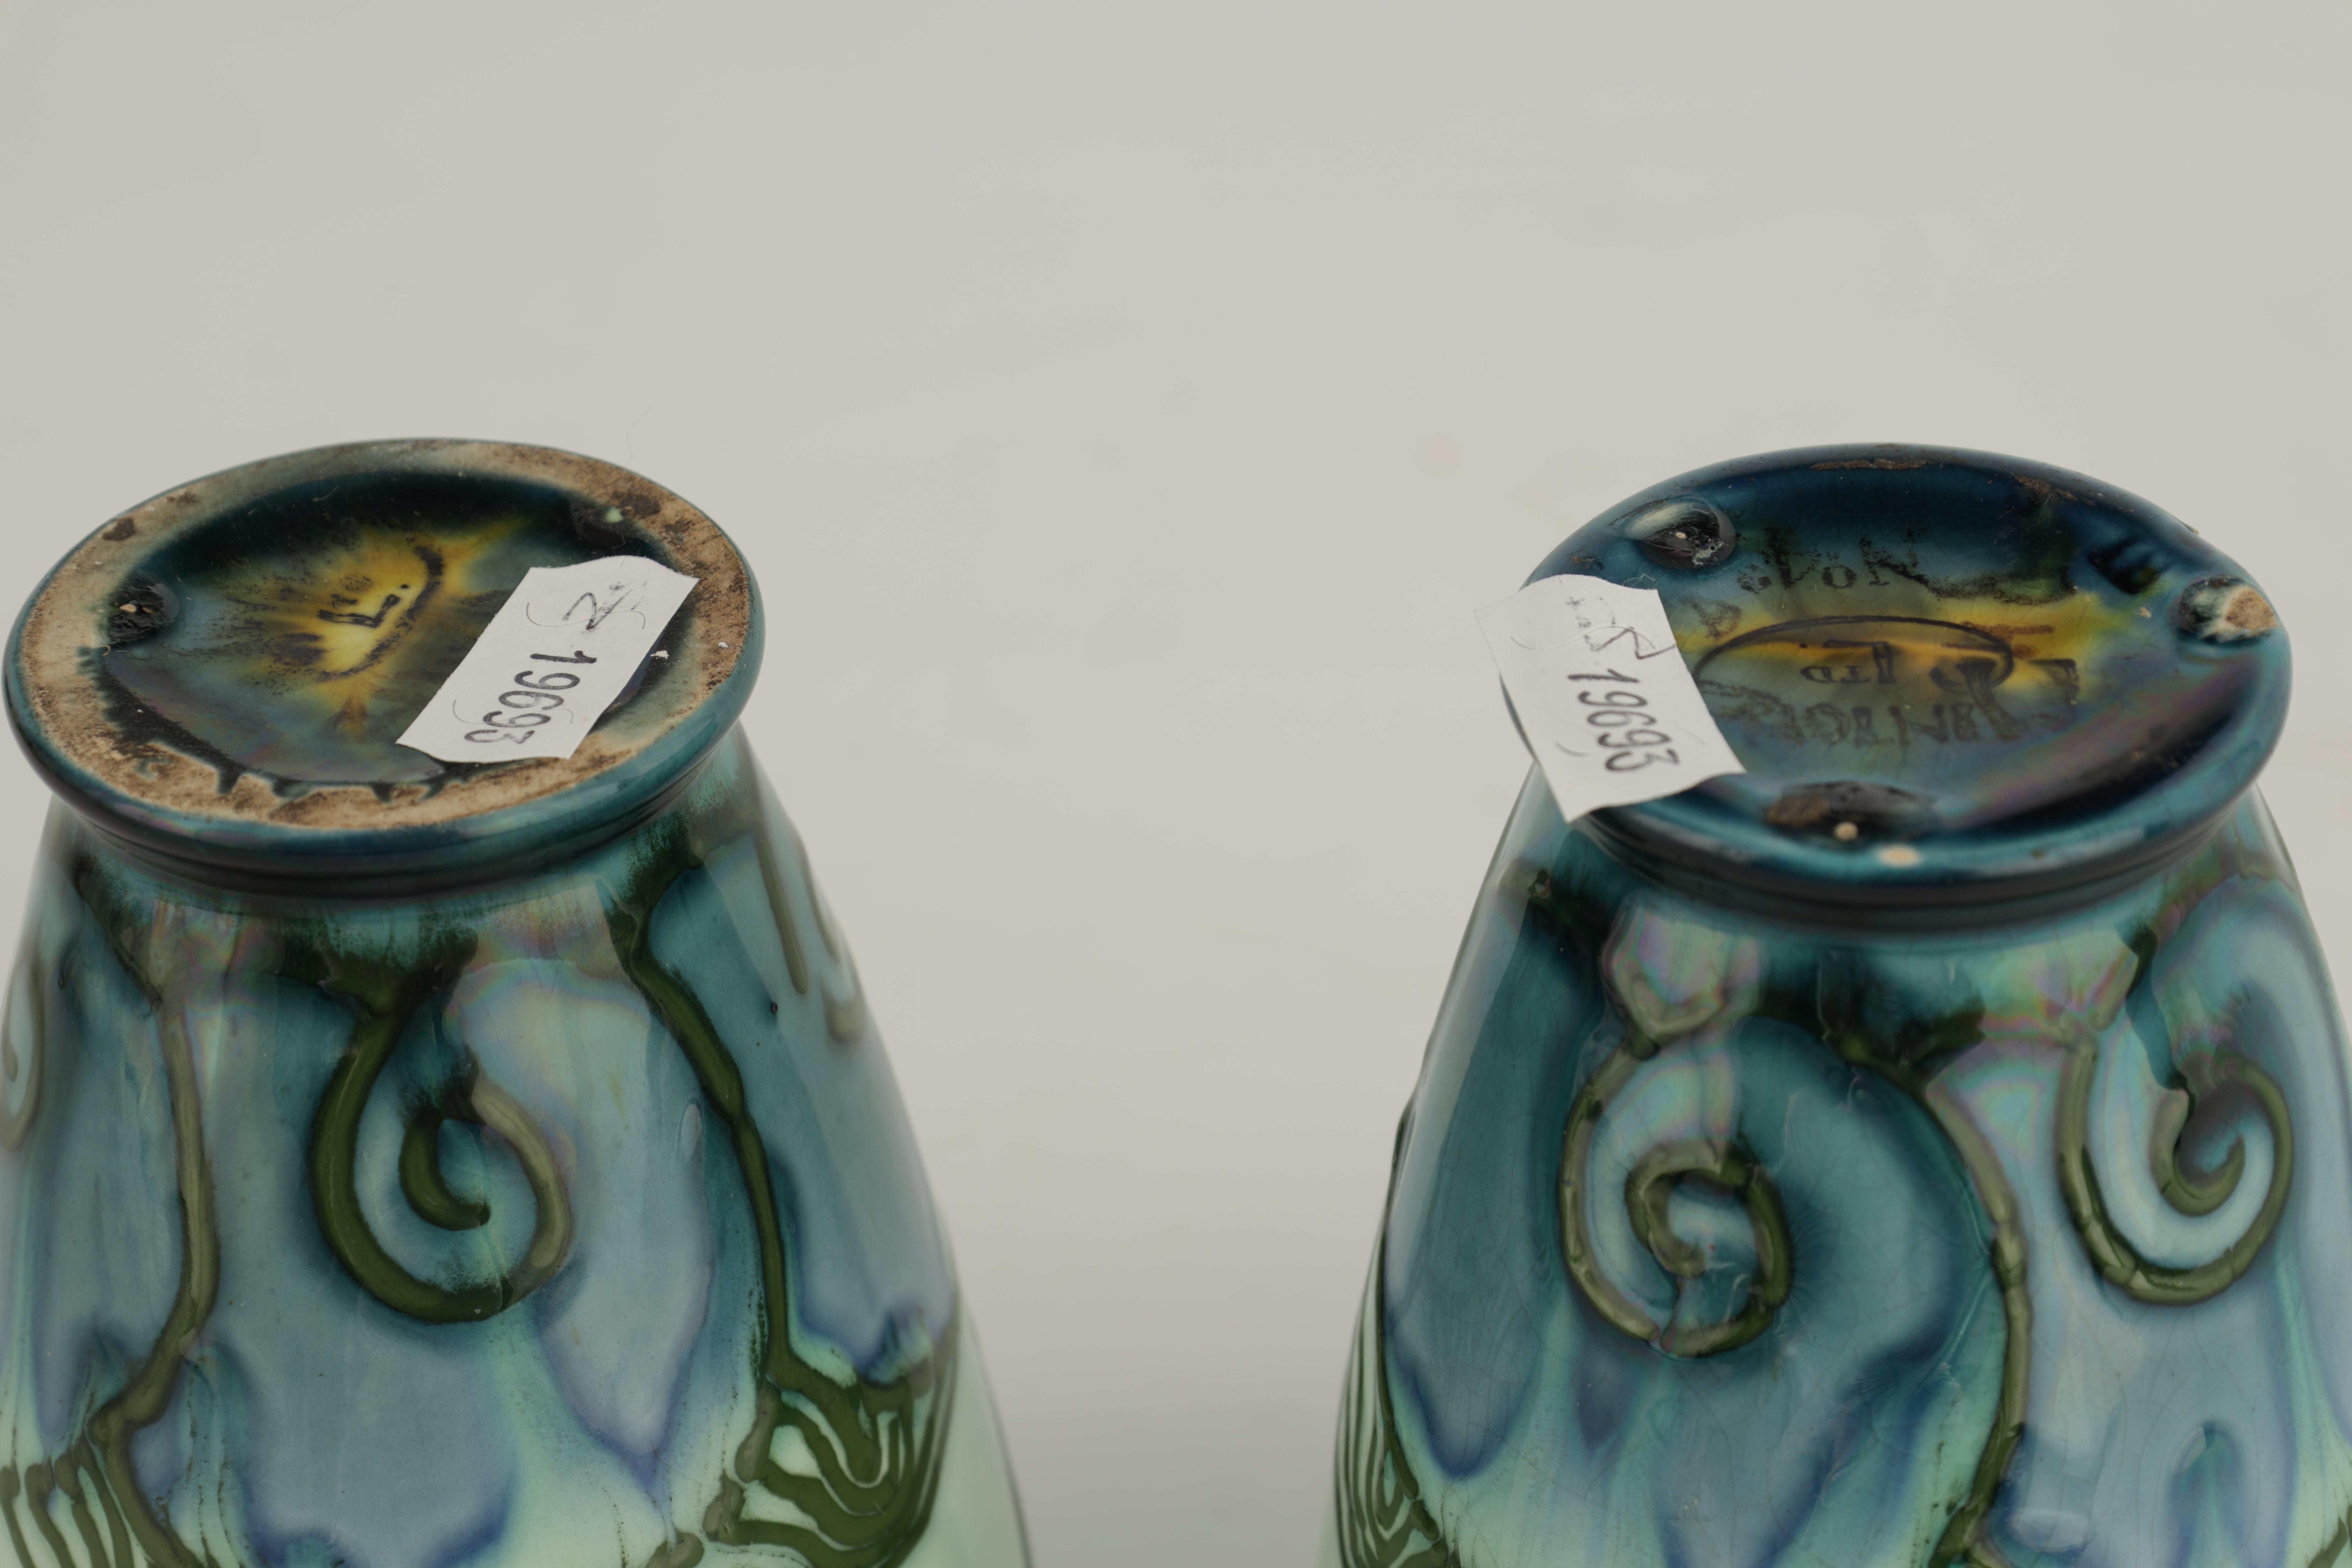 A PAIR OF MINTON LTD SECESSIONIST WARE TAPERING BEAKER VASES tube lined and decorated with - Image 5 of 6